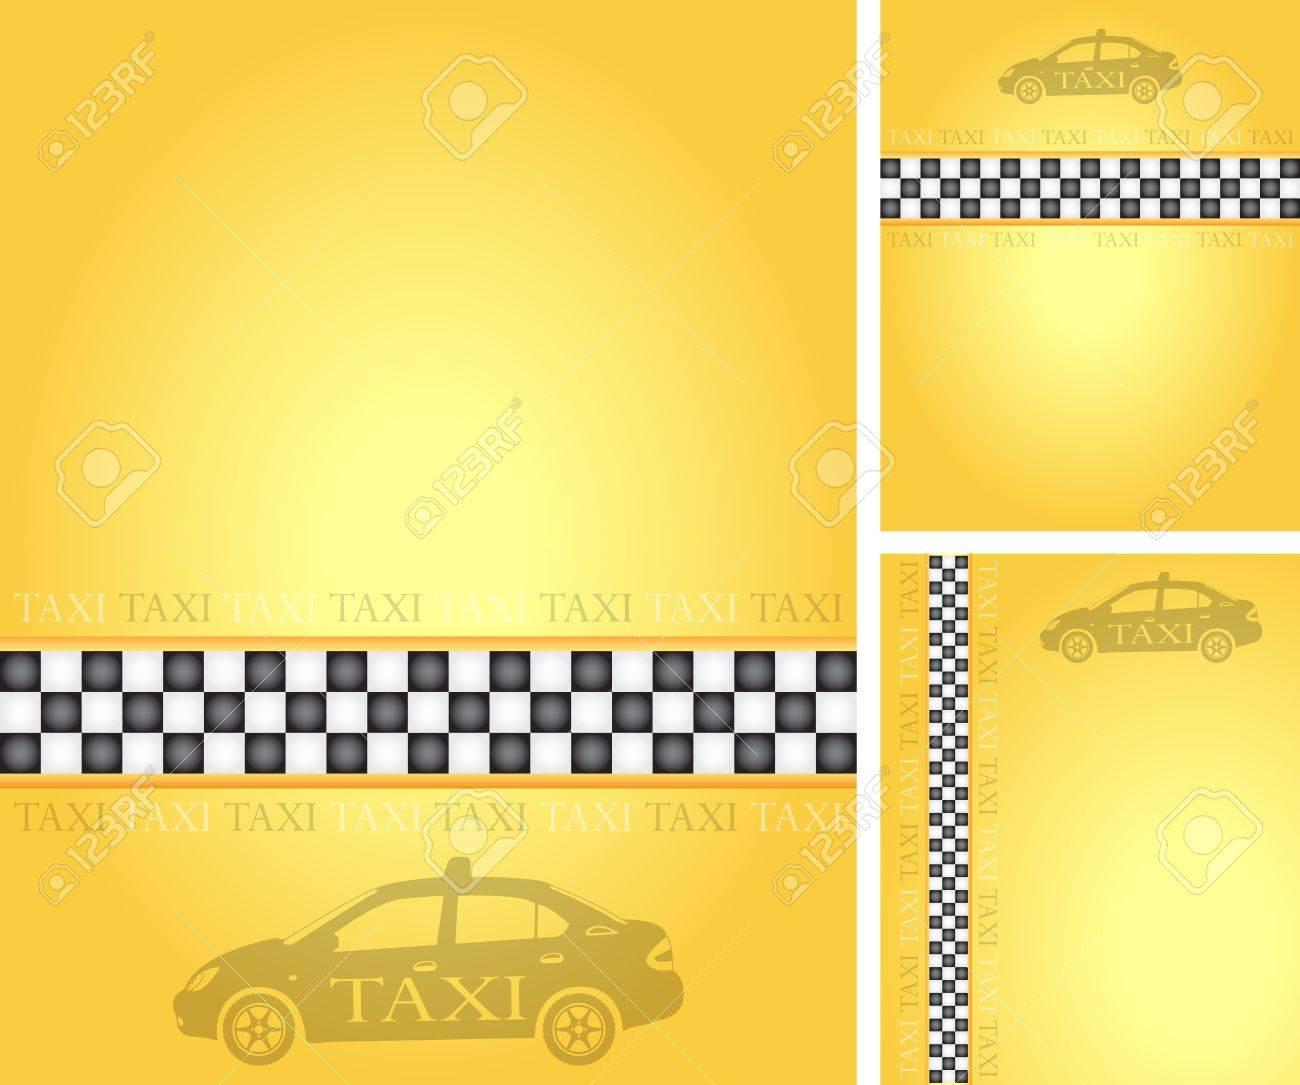 Set of taxi banners, vector illustration Stock Vector - 9542889